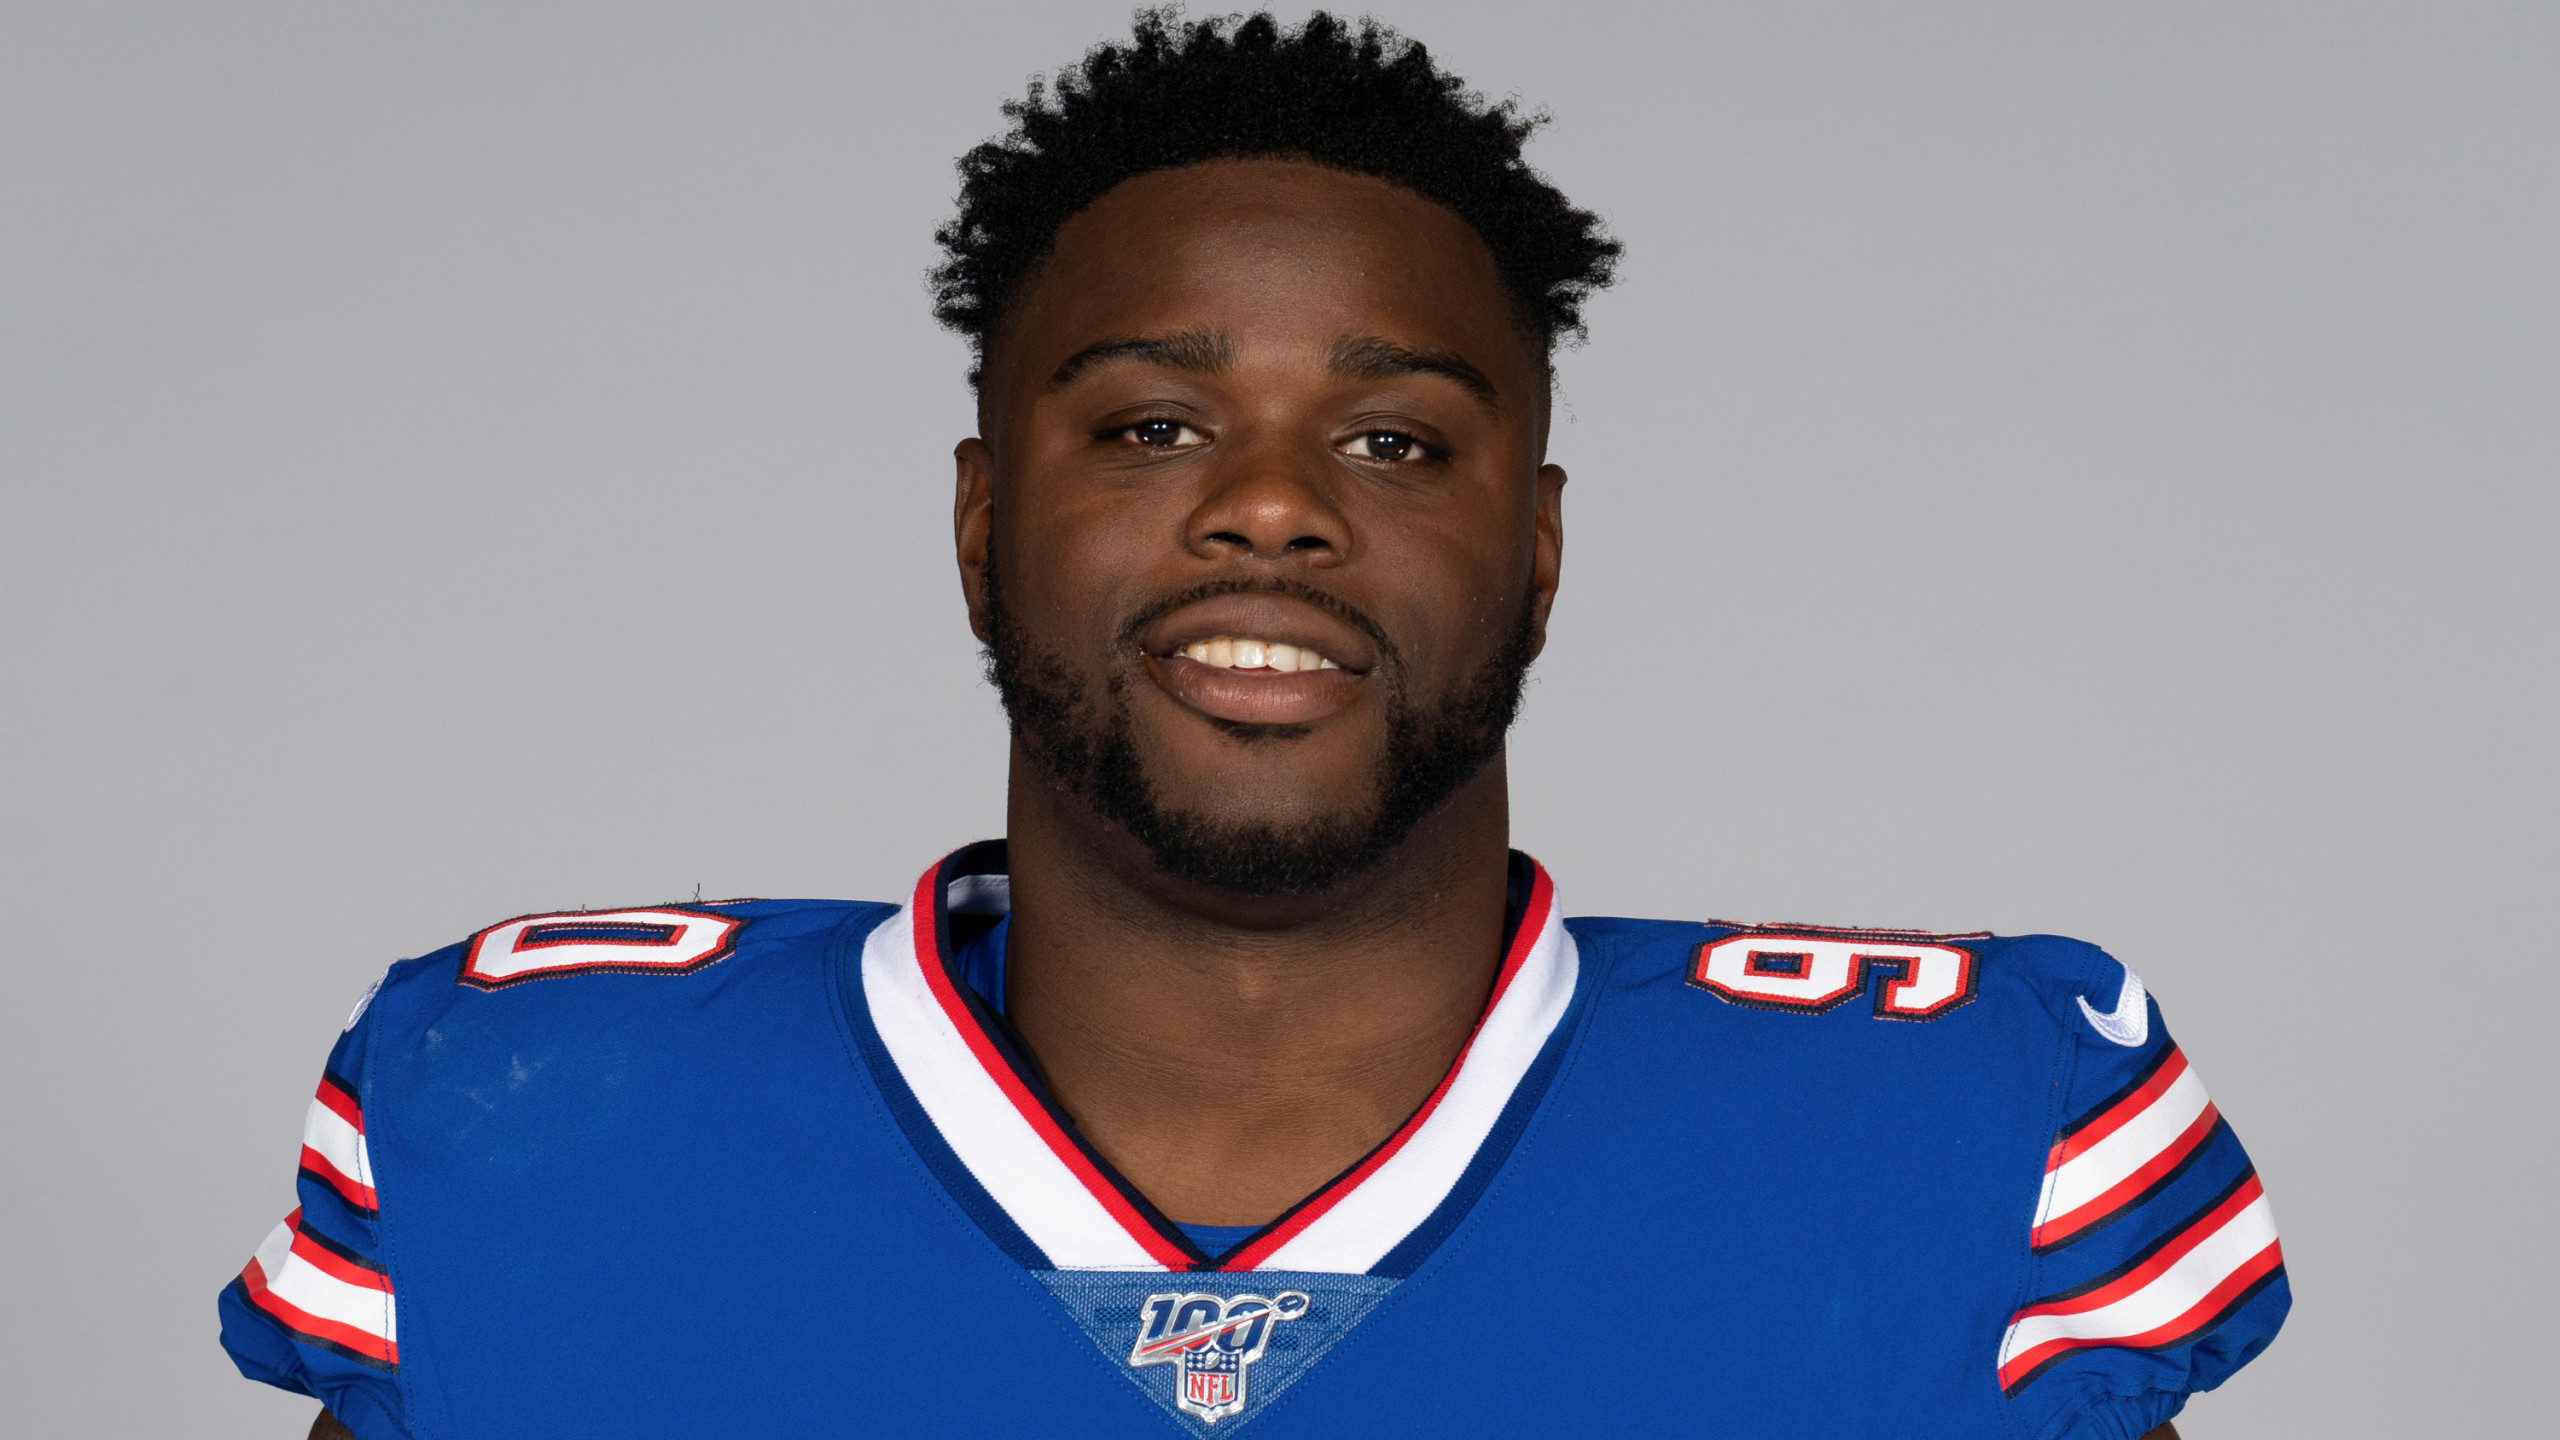 NFL player to pay for 11 year old shooting victims funeral WKRG 2560x1440